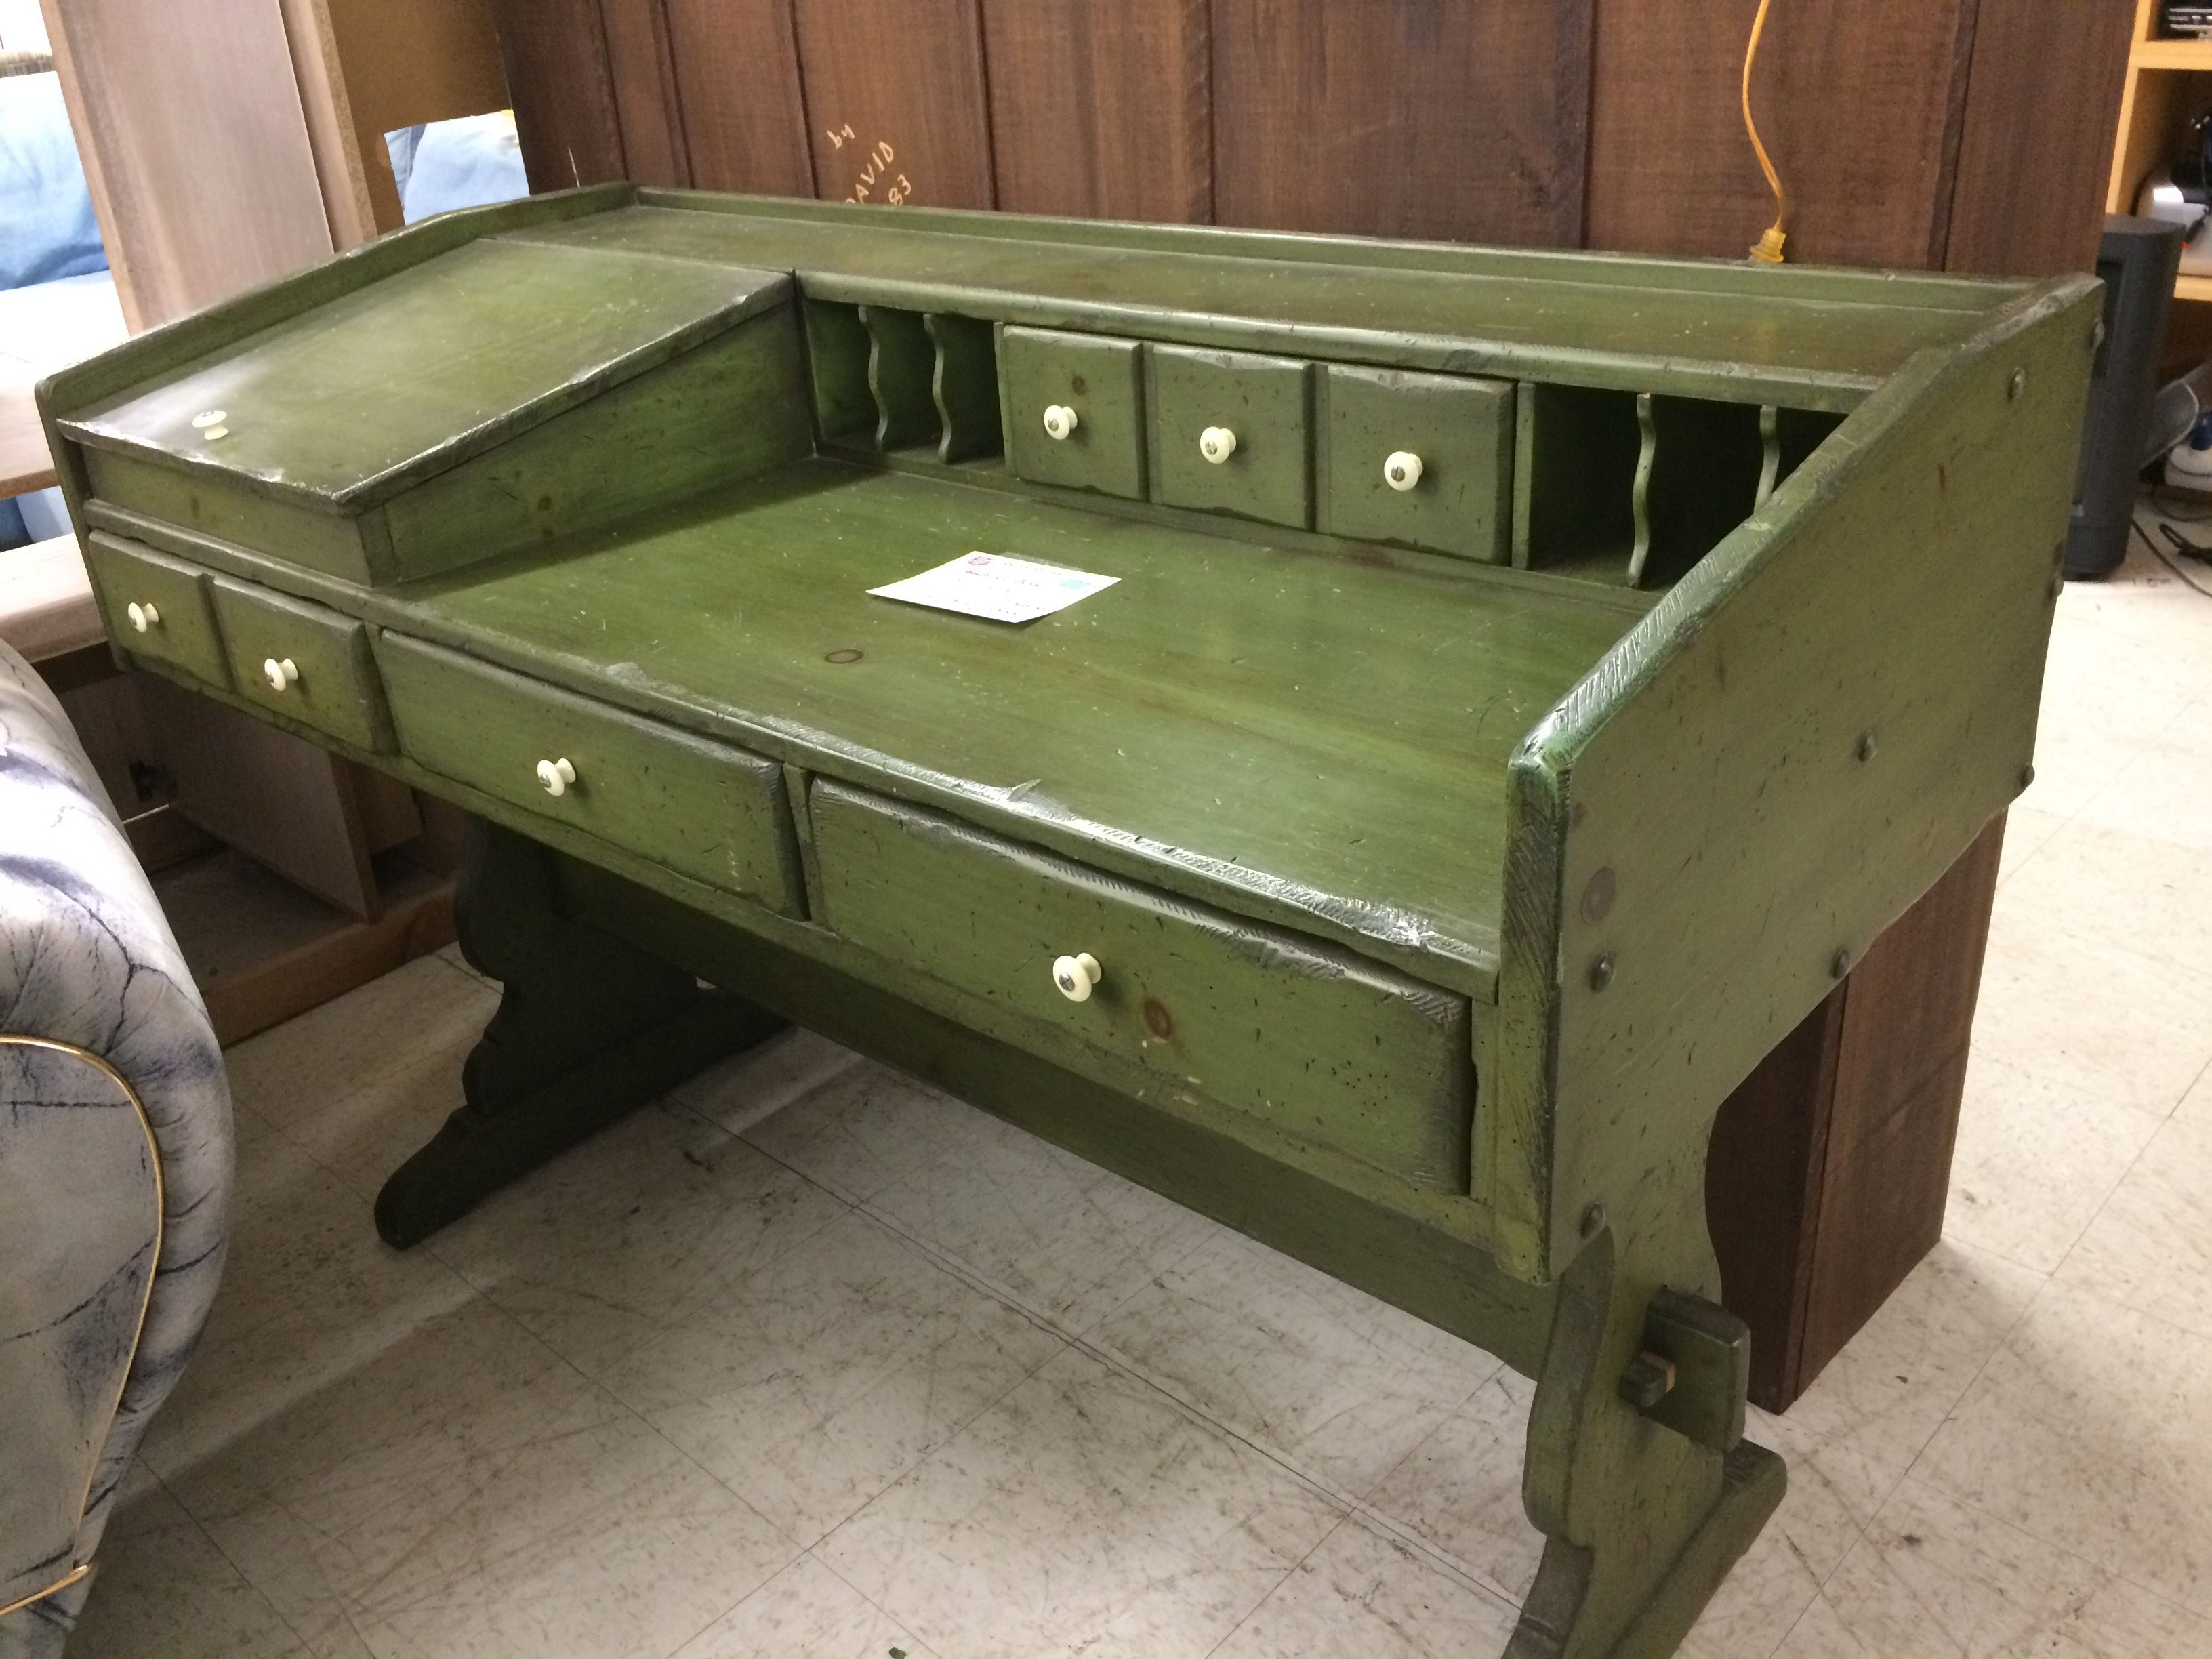 This unique and beautiful desk is looking for its forever home! Stop by 2100 North Main Street and check it out today! #FeaturedFurniture